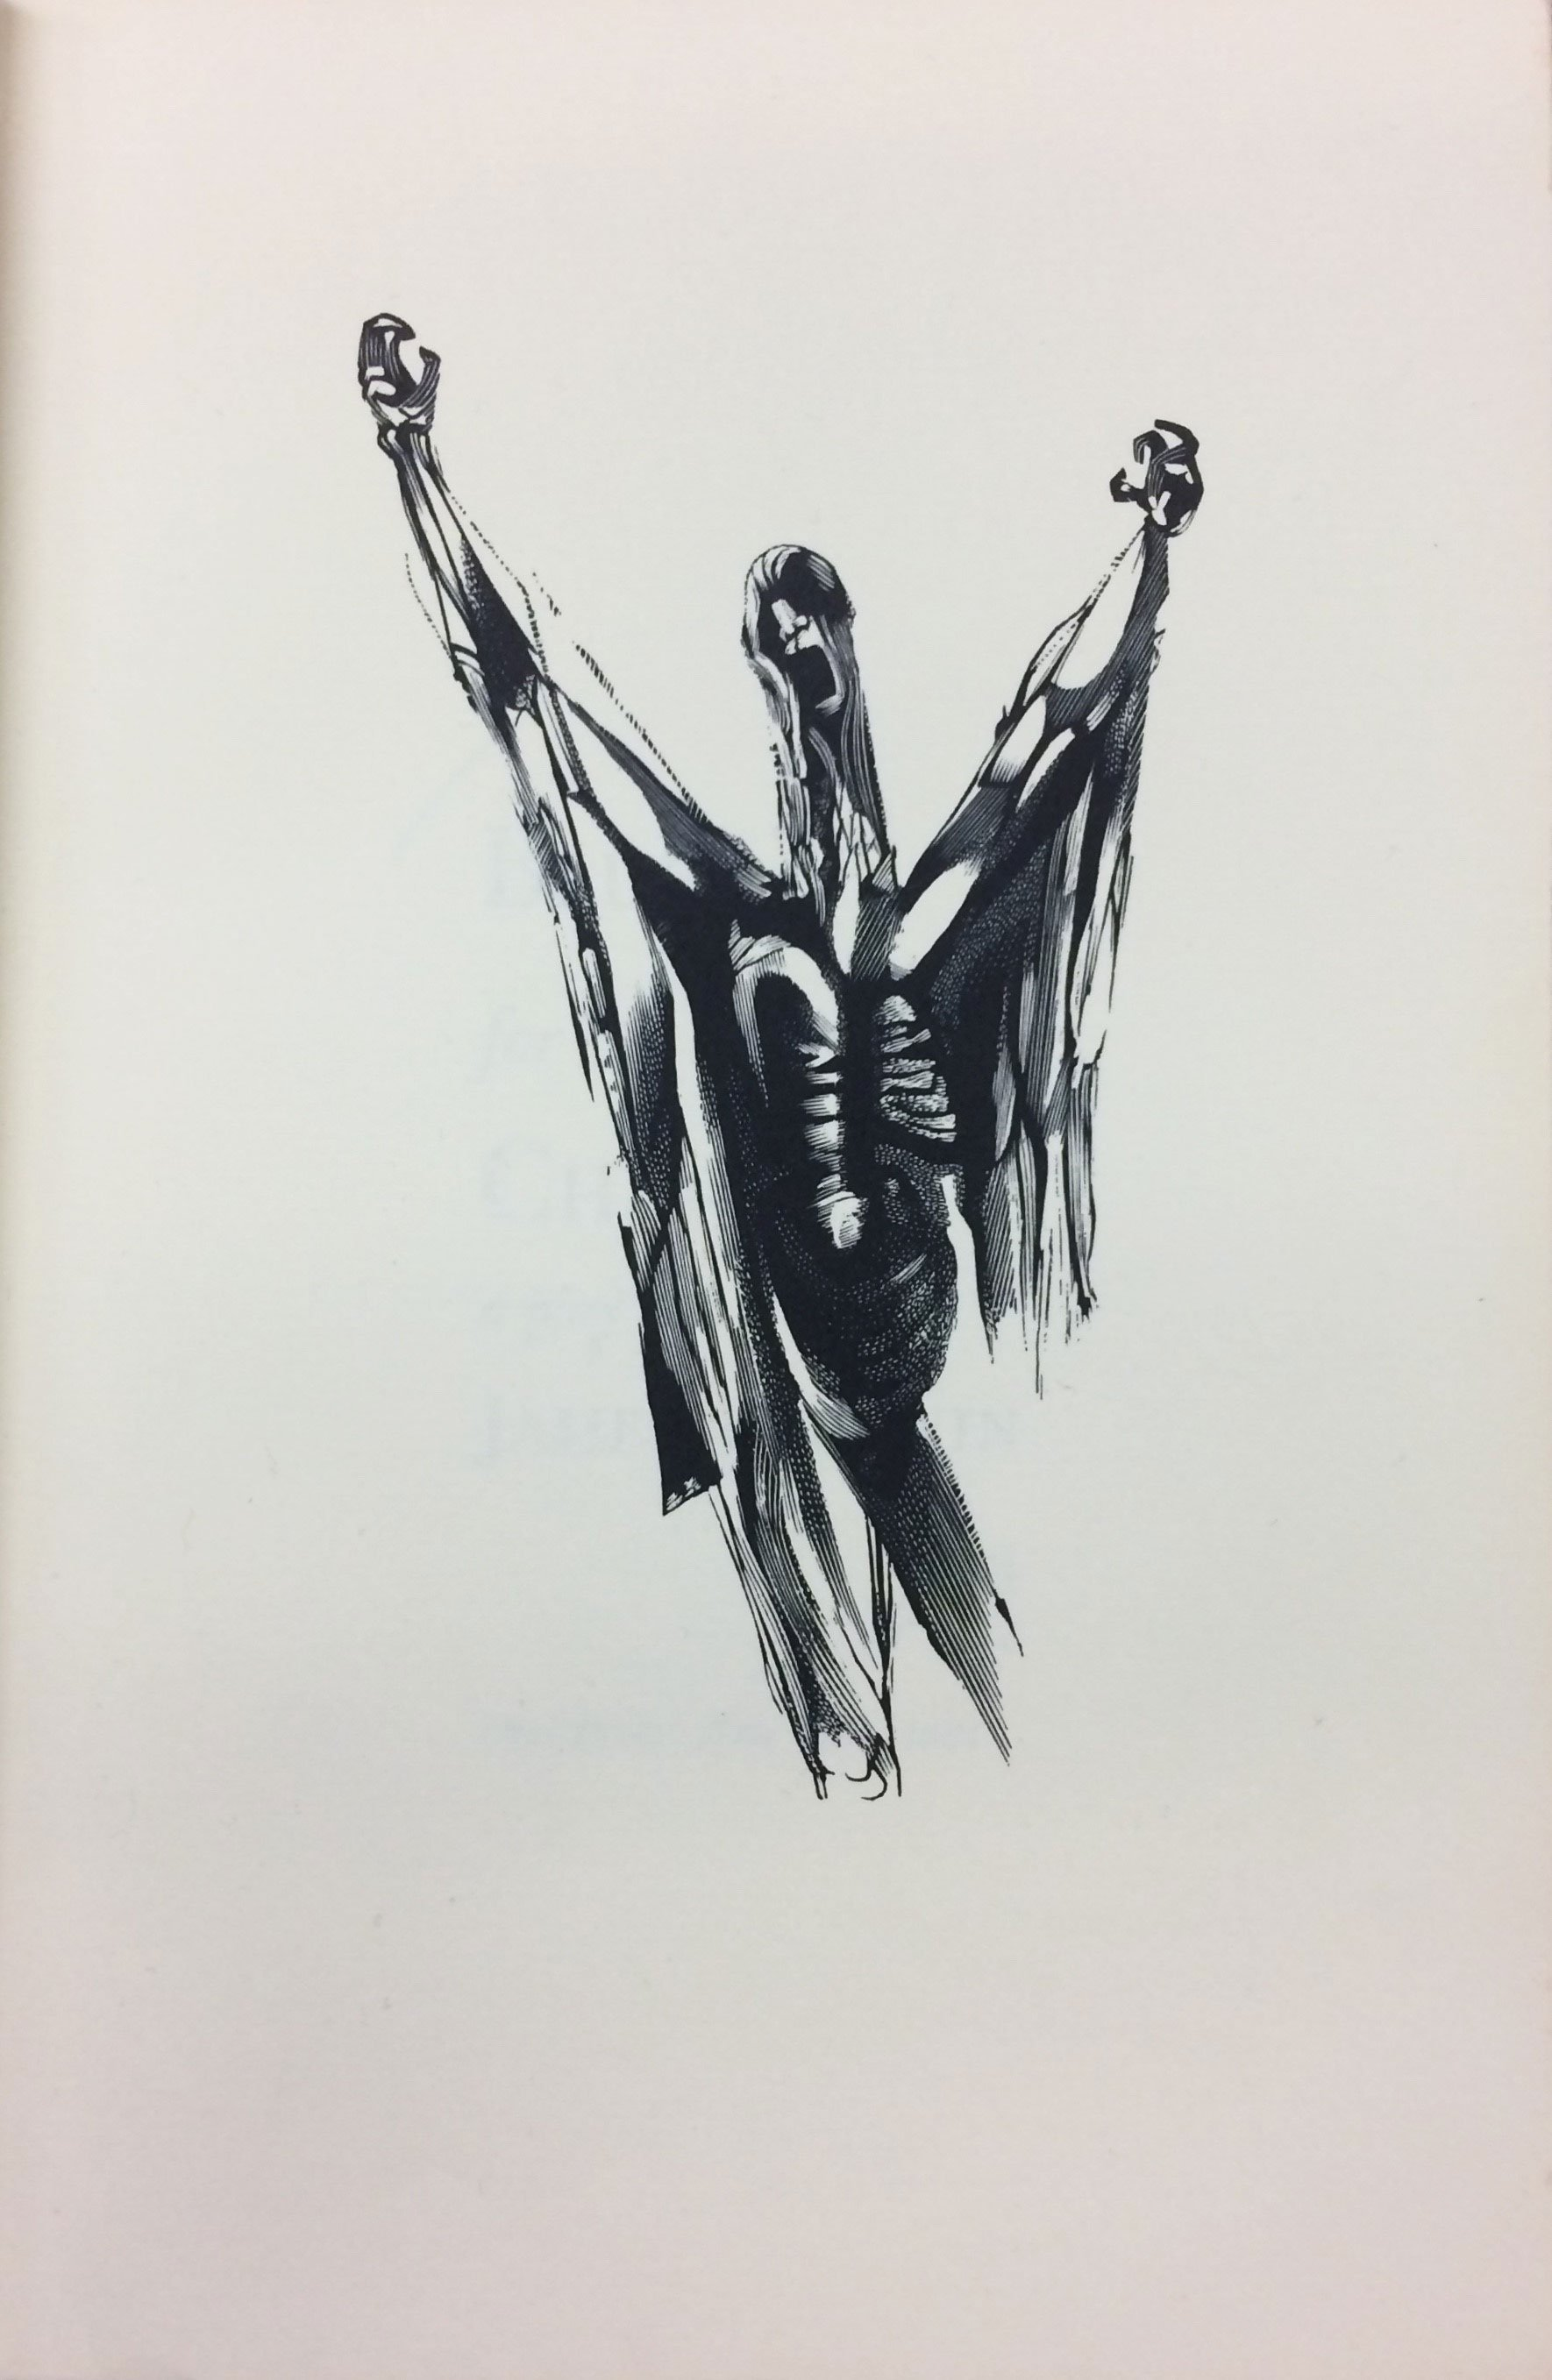 A pen sketch of a man with his arms raised above his head, and his mouth agape, as if screaming.